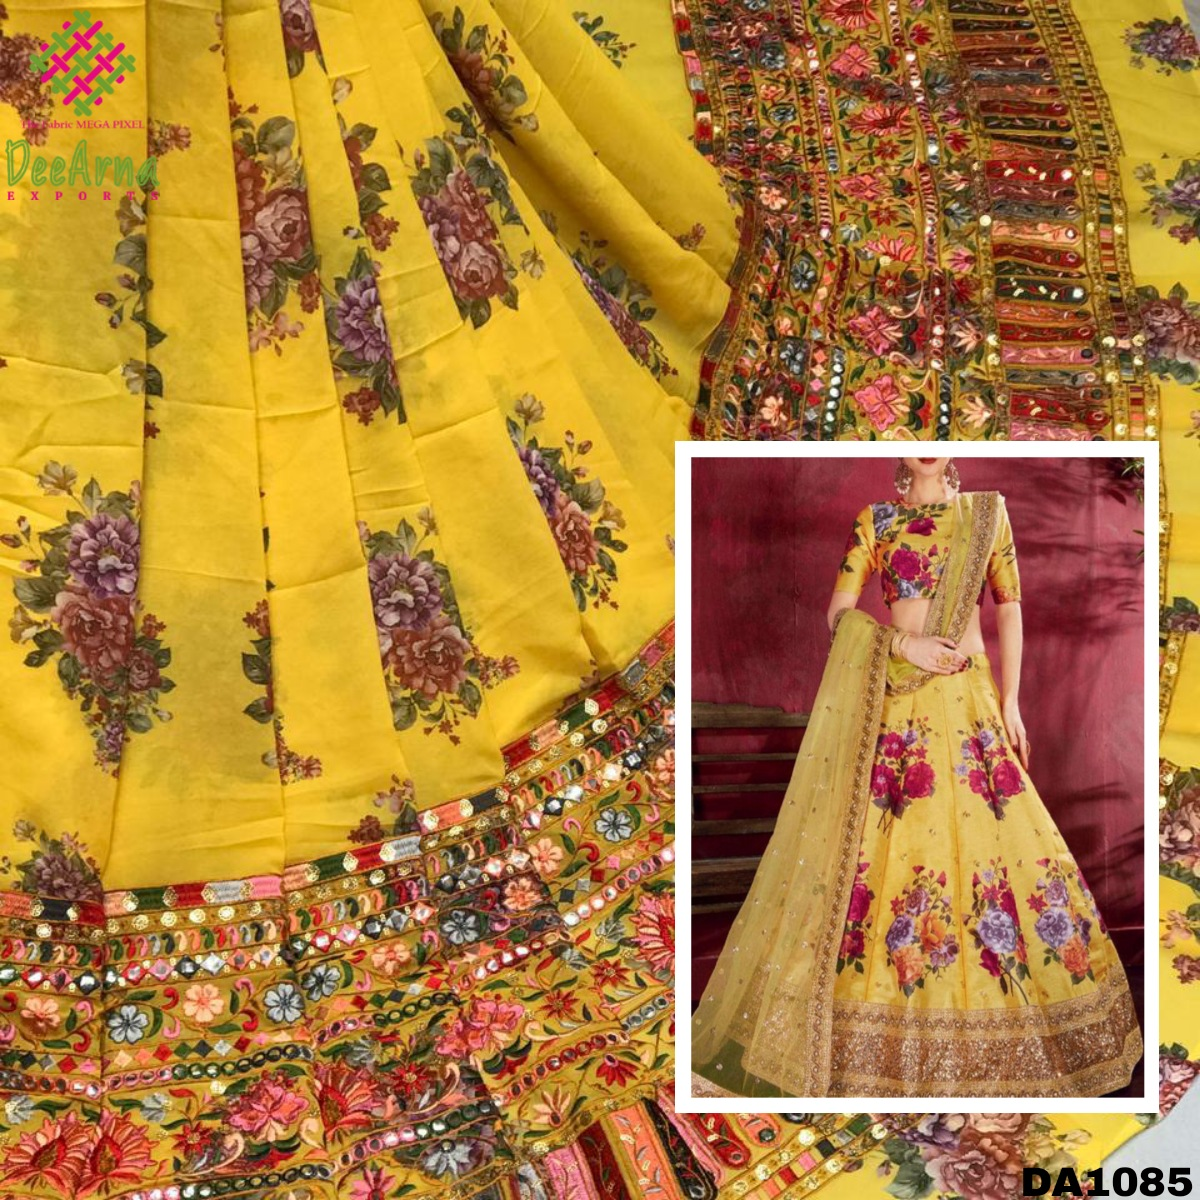 """Buy This Georgette Digital Print Fabric With Embroidery Work 😍 Width:52""""inch Price :Approx 715 Rs/mtr MOQ:14 Meter Dealing in wholesale & for #boutique use! #l4l #F4F #Bahrain #boutiqueshopping #Like #fashiondesigner #follo #ClothingBrand #Clothing #clothingline #fabrics #fabric"""